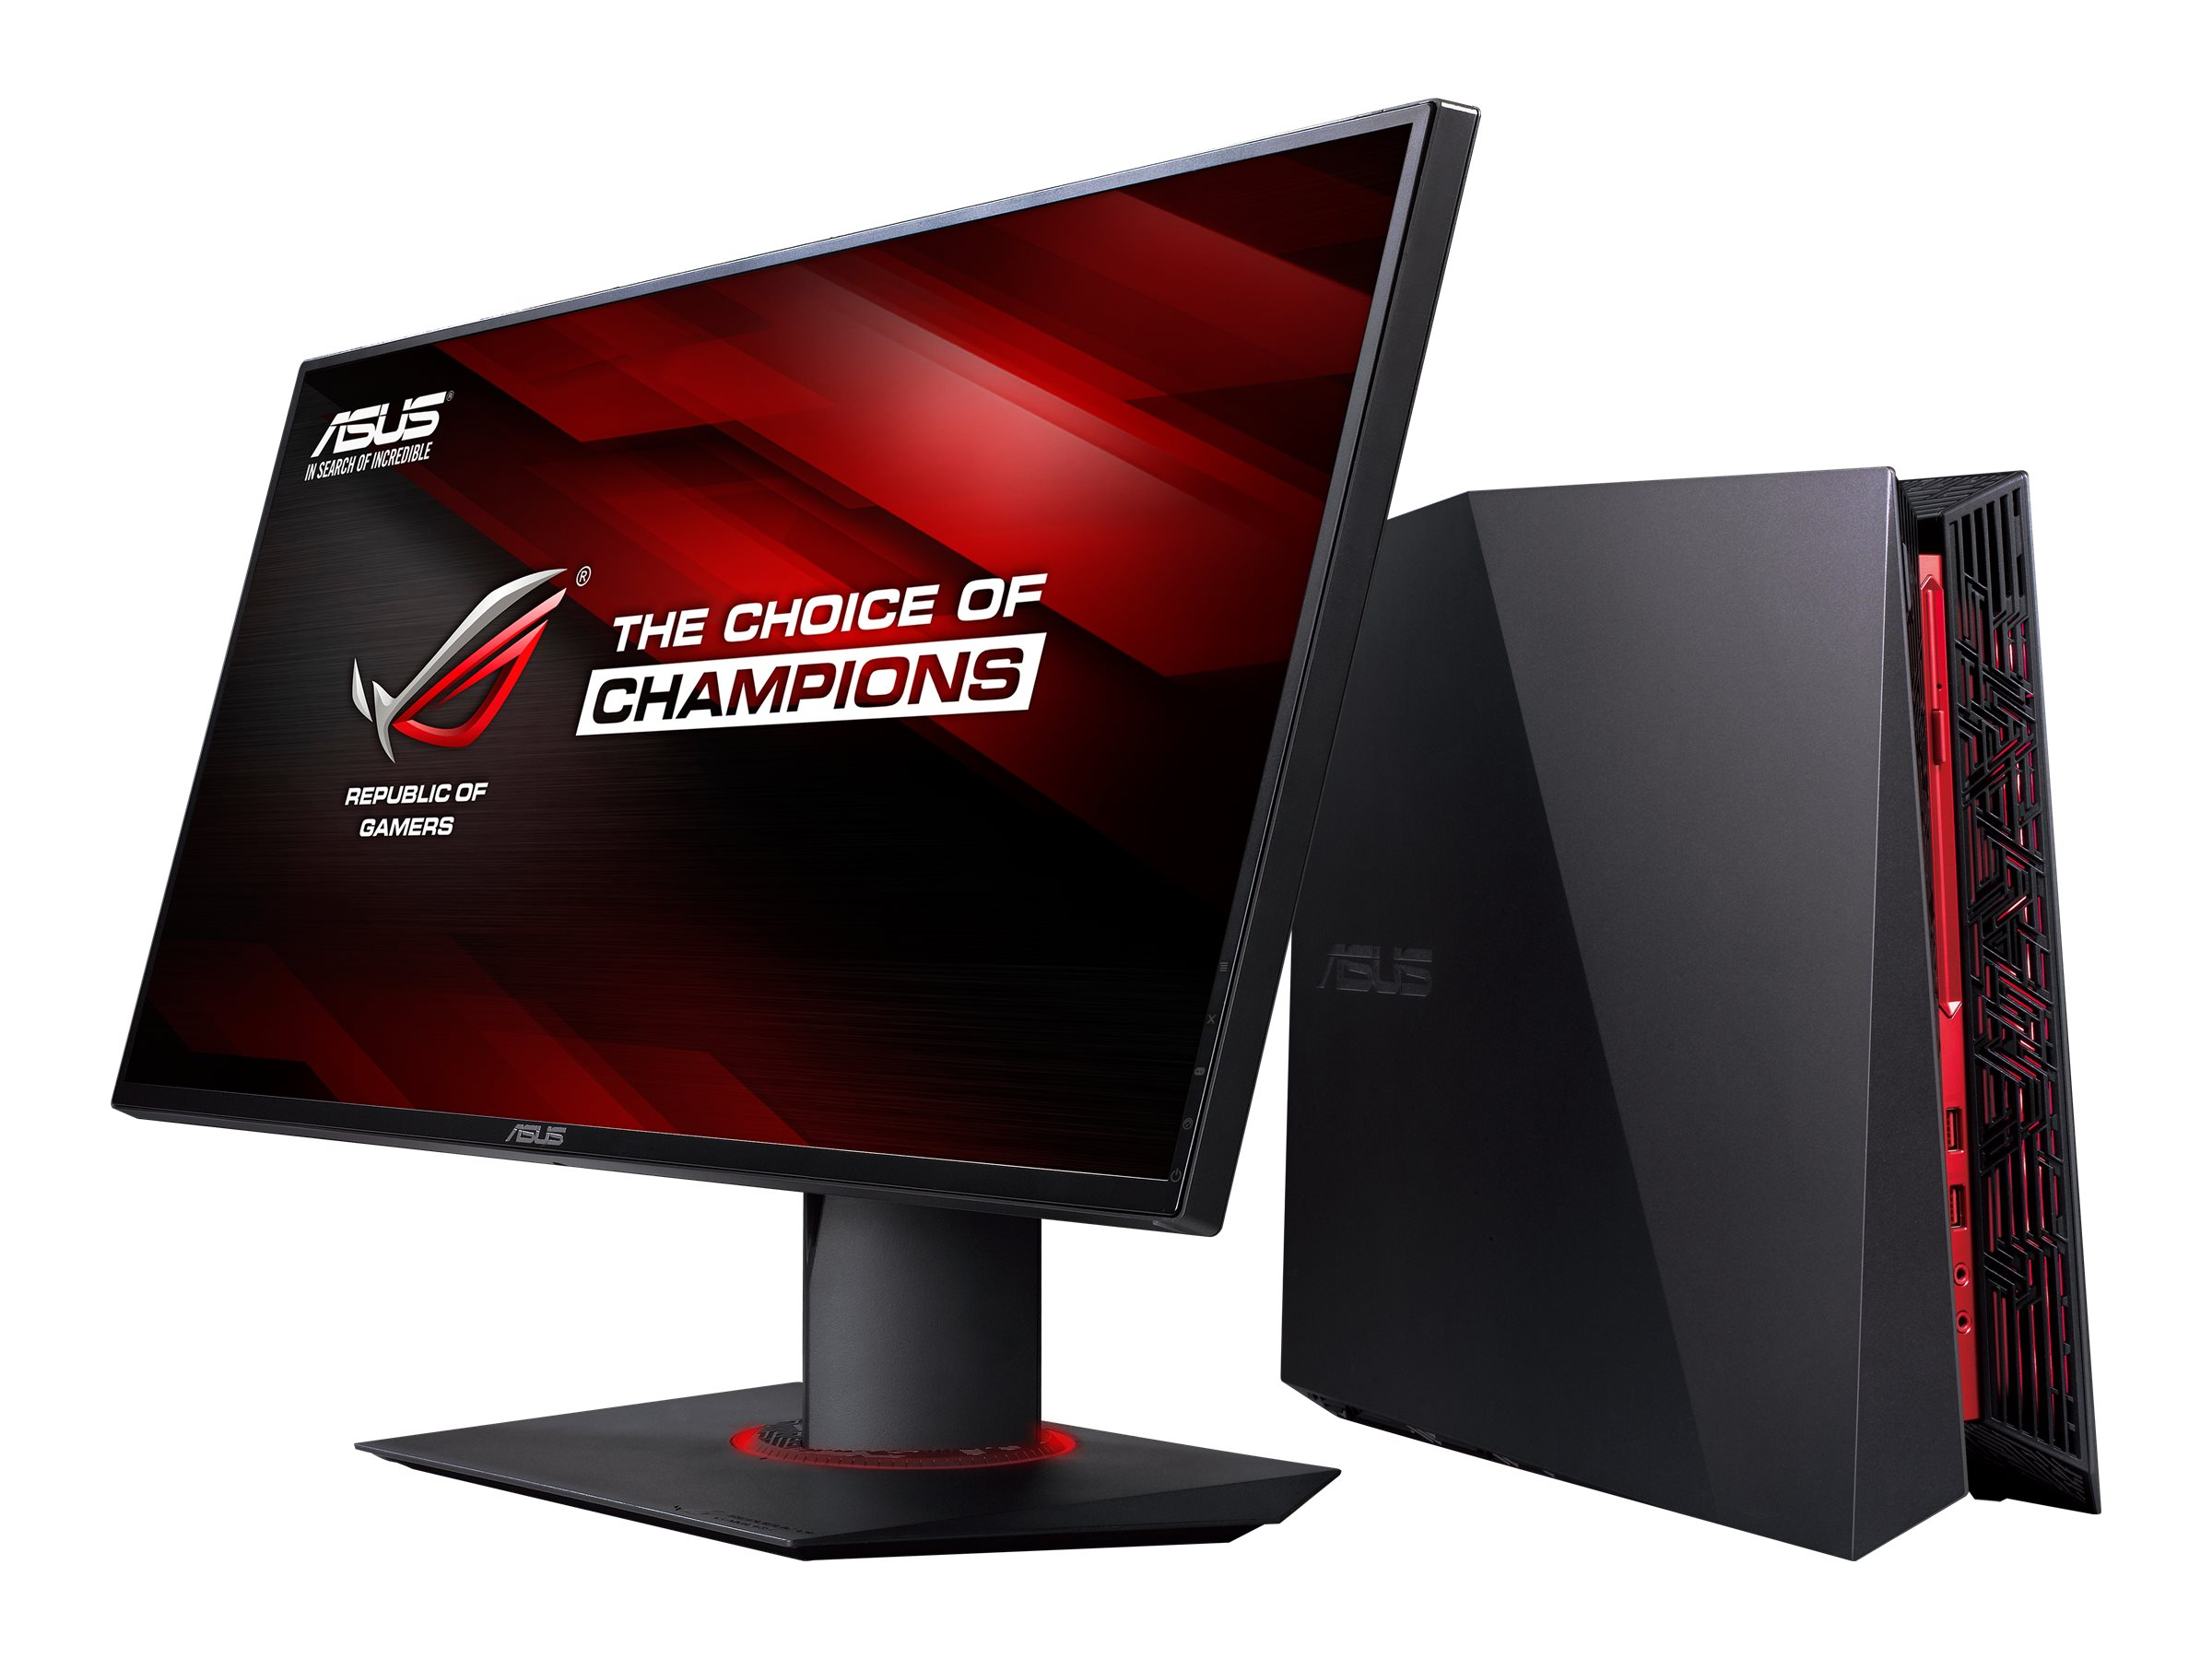 Asus G20CB-DH73-GTX1080 Image 9